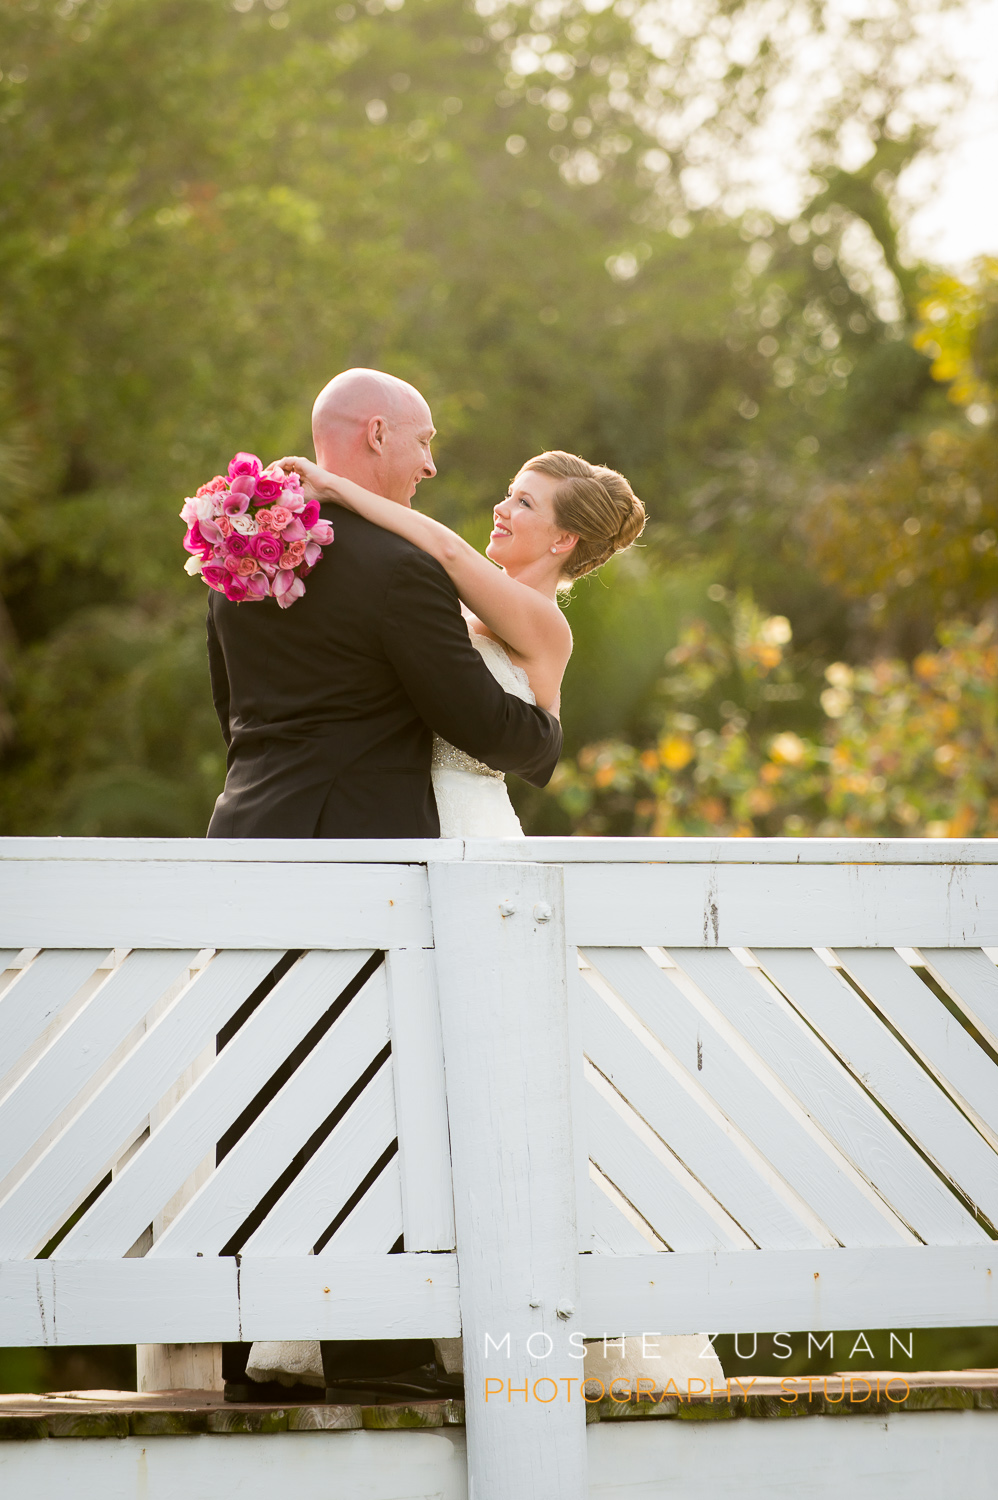 Sanibel-Island-Florida-Wedding-Moshe-Zusman-Photography-21.jpg